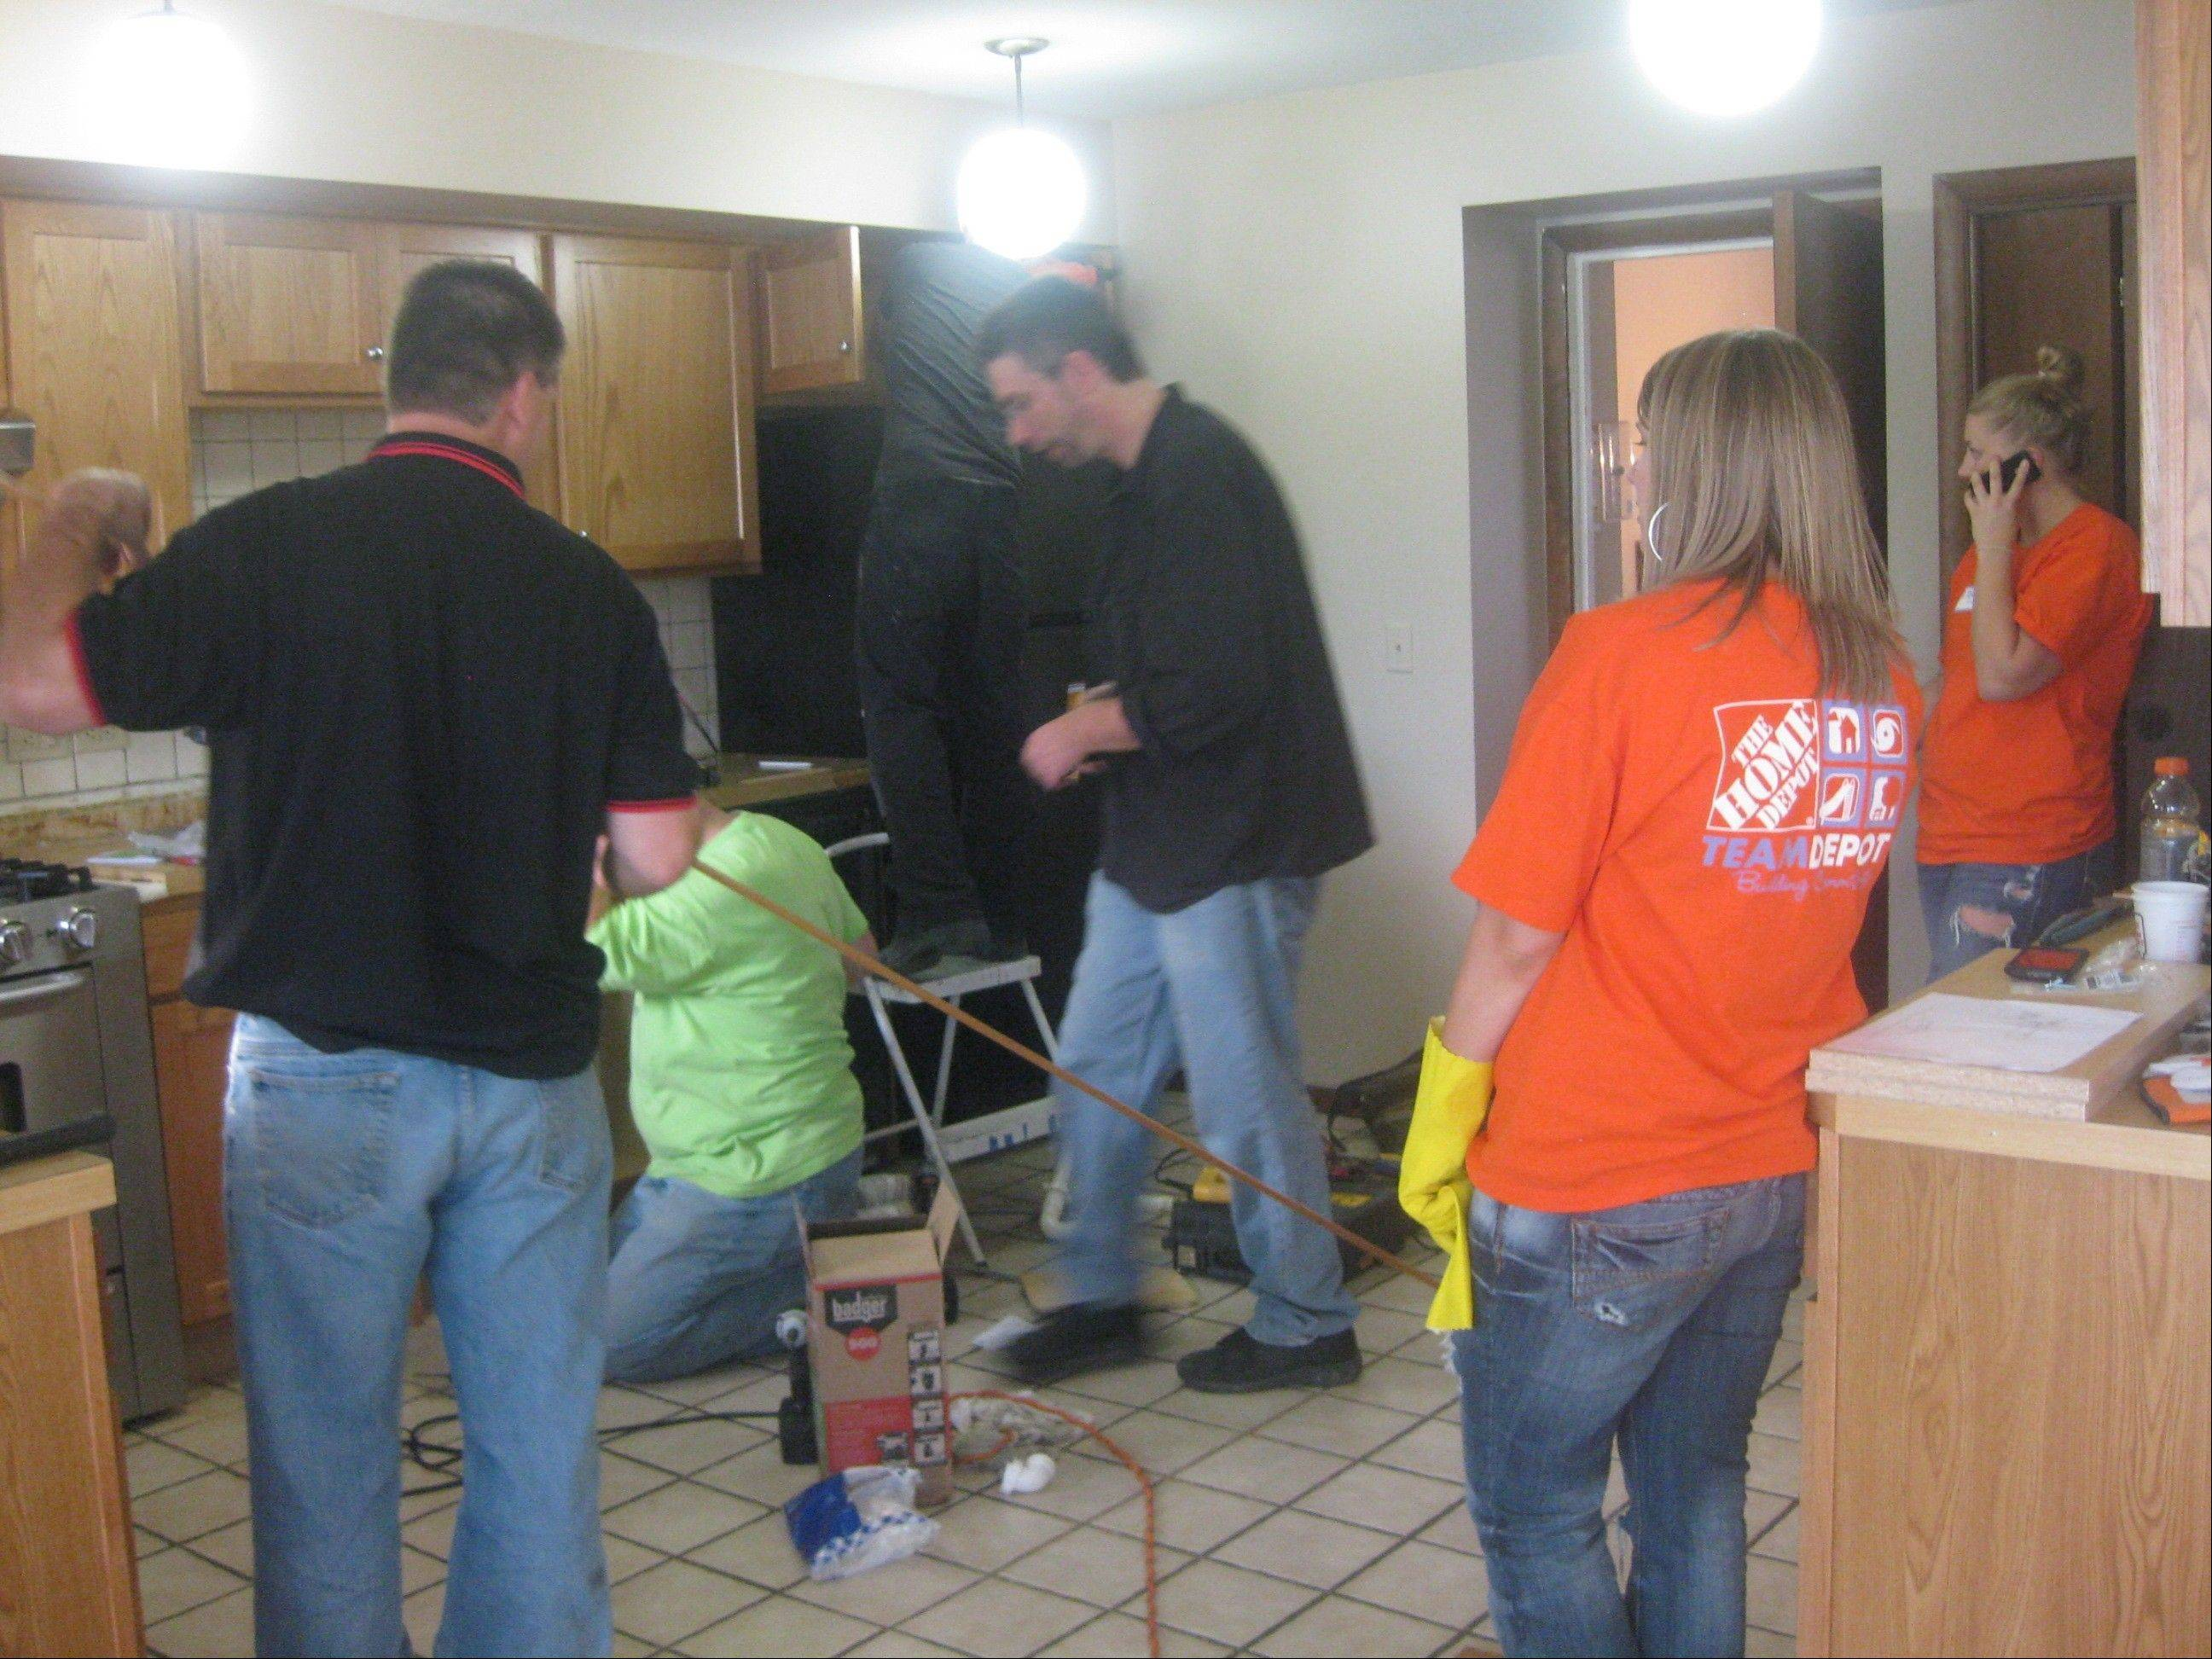 Volunteers from Home Depot work on remodeling a kitchen in a group home in Hoffman Estates for disabled adults that is operated by Clearbrook.